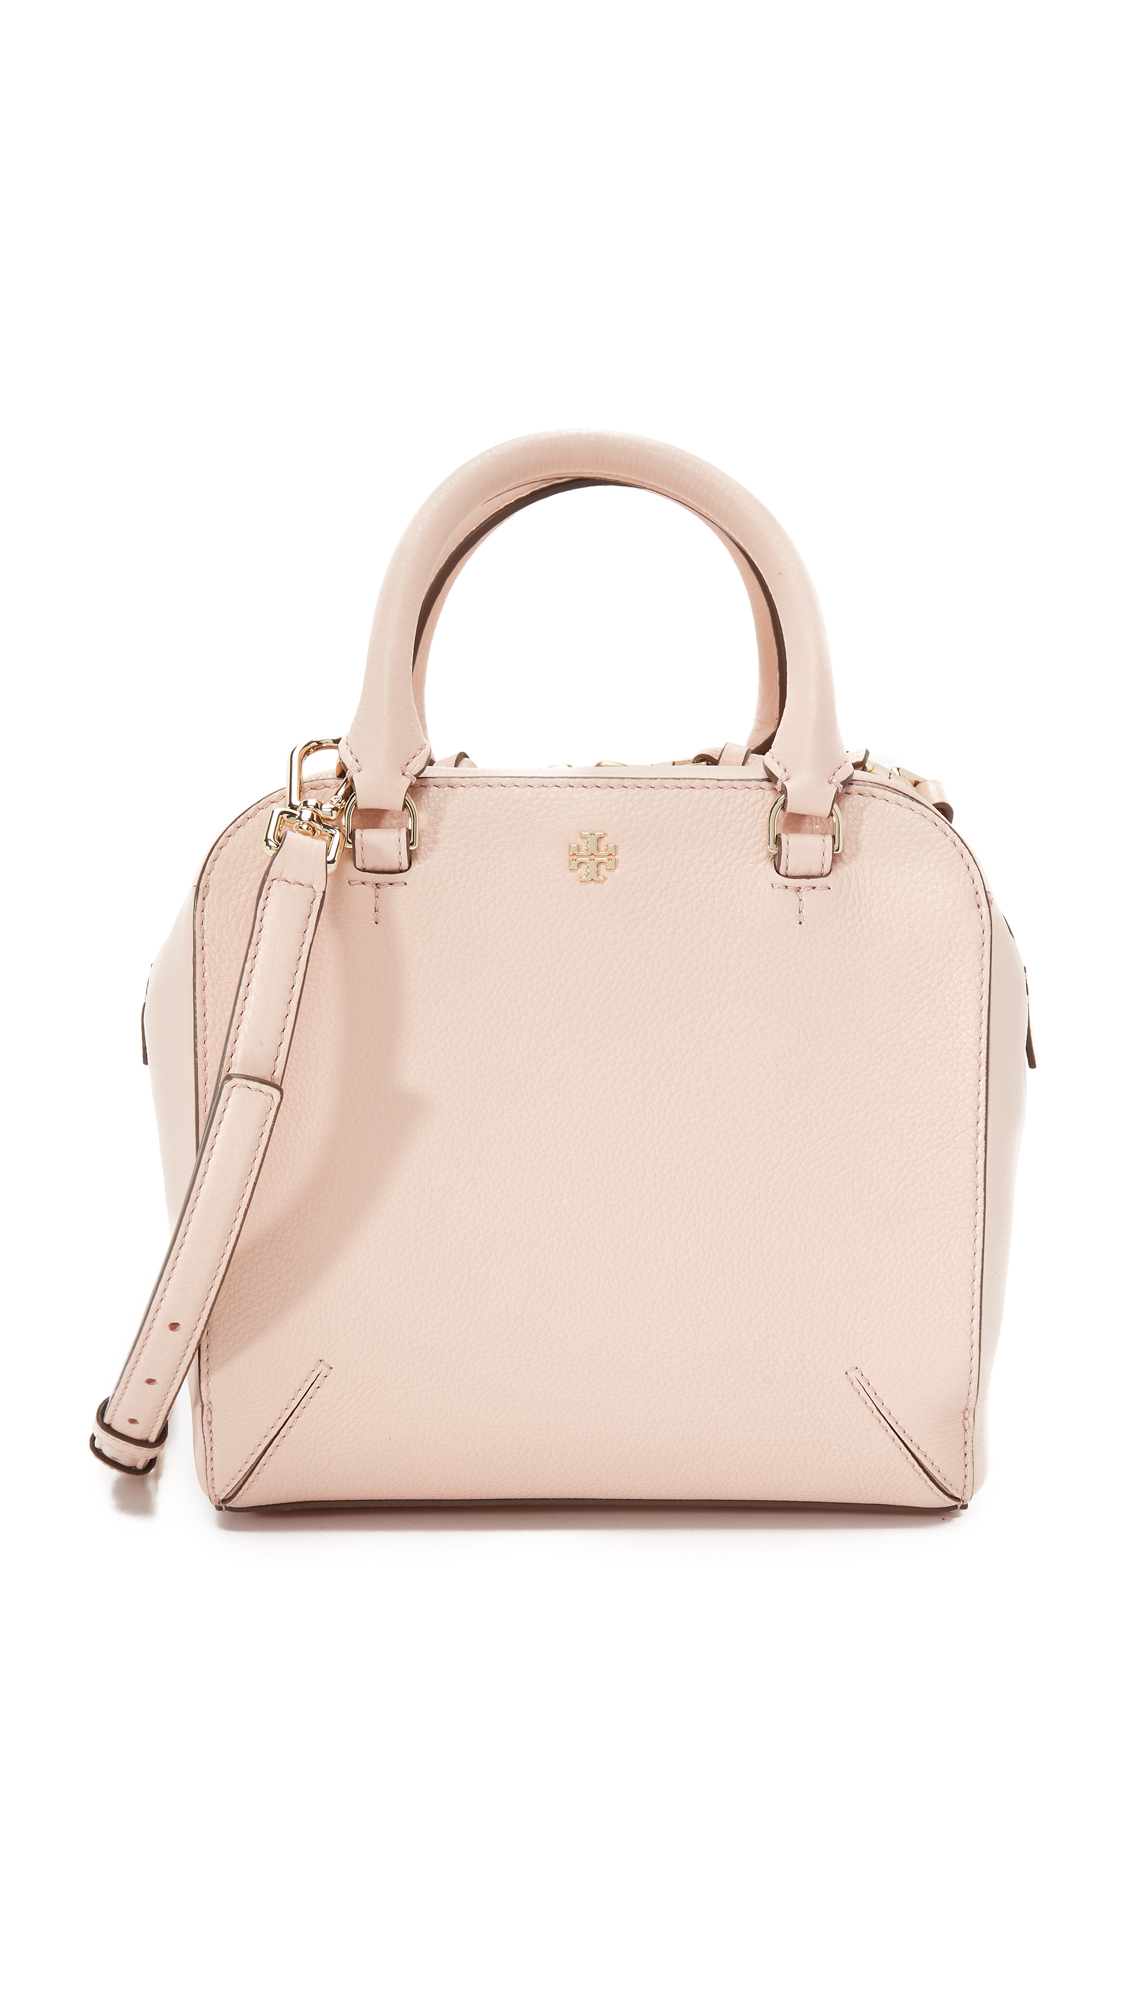 864fe486a7c Lyst - Tory Burch Robinson Pebbled Mini Satchel in Pink